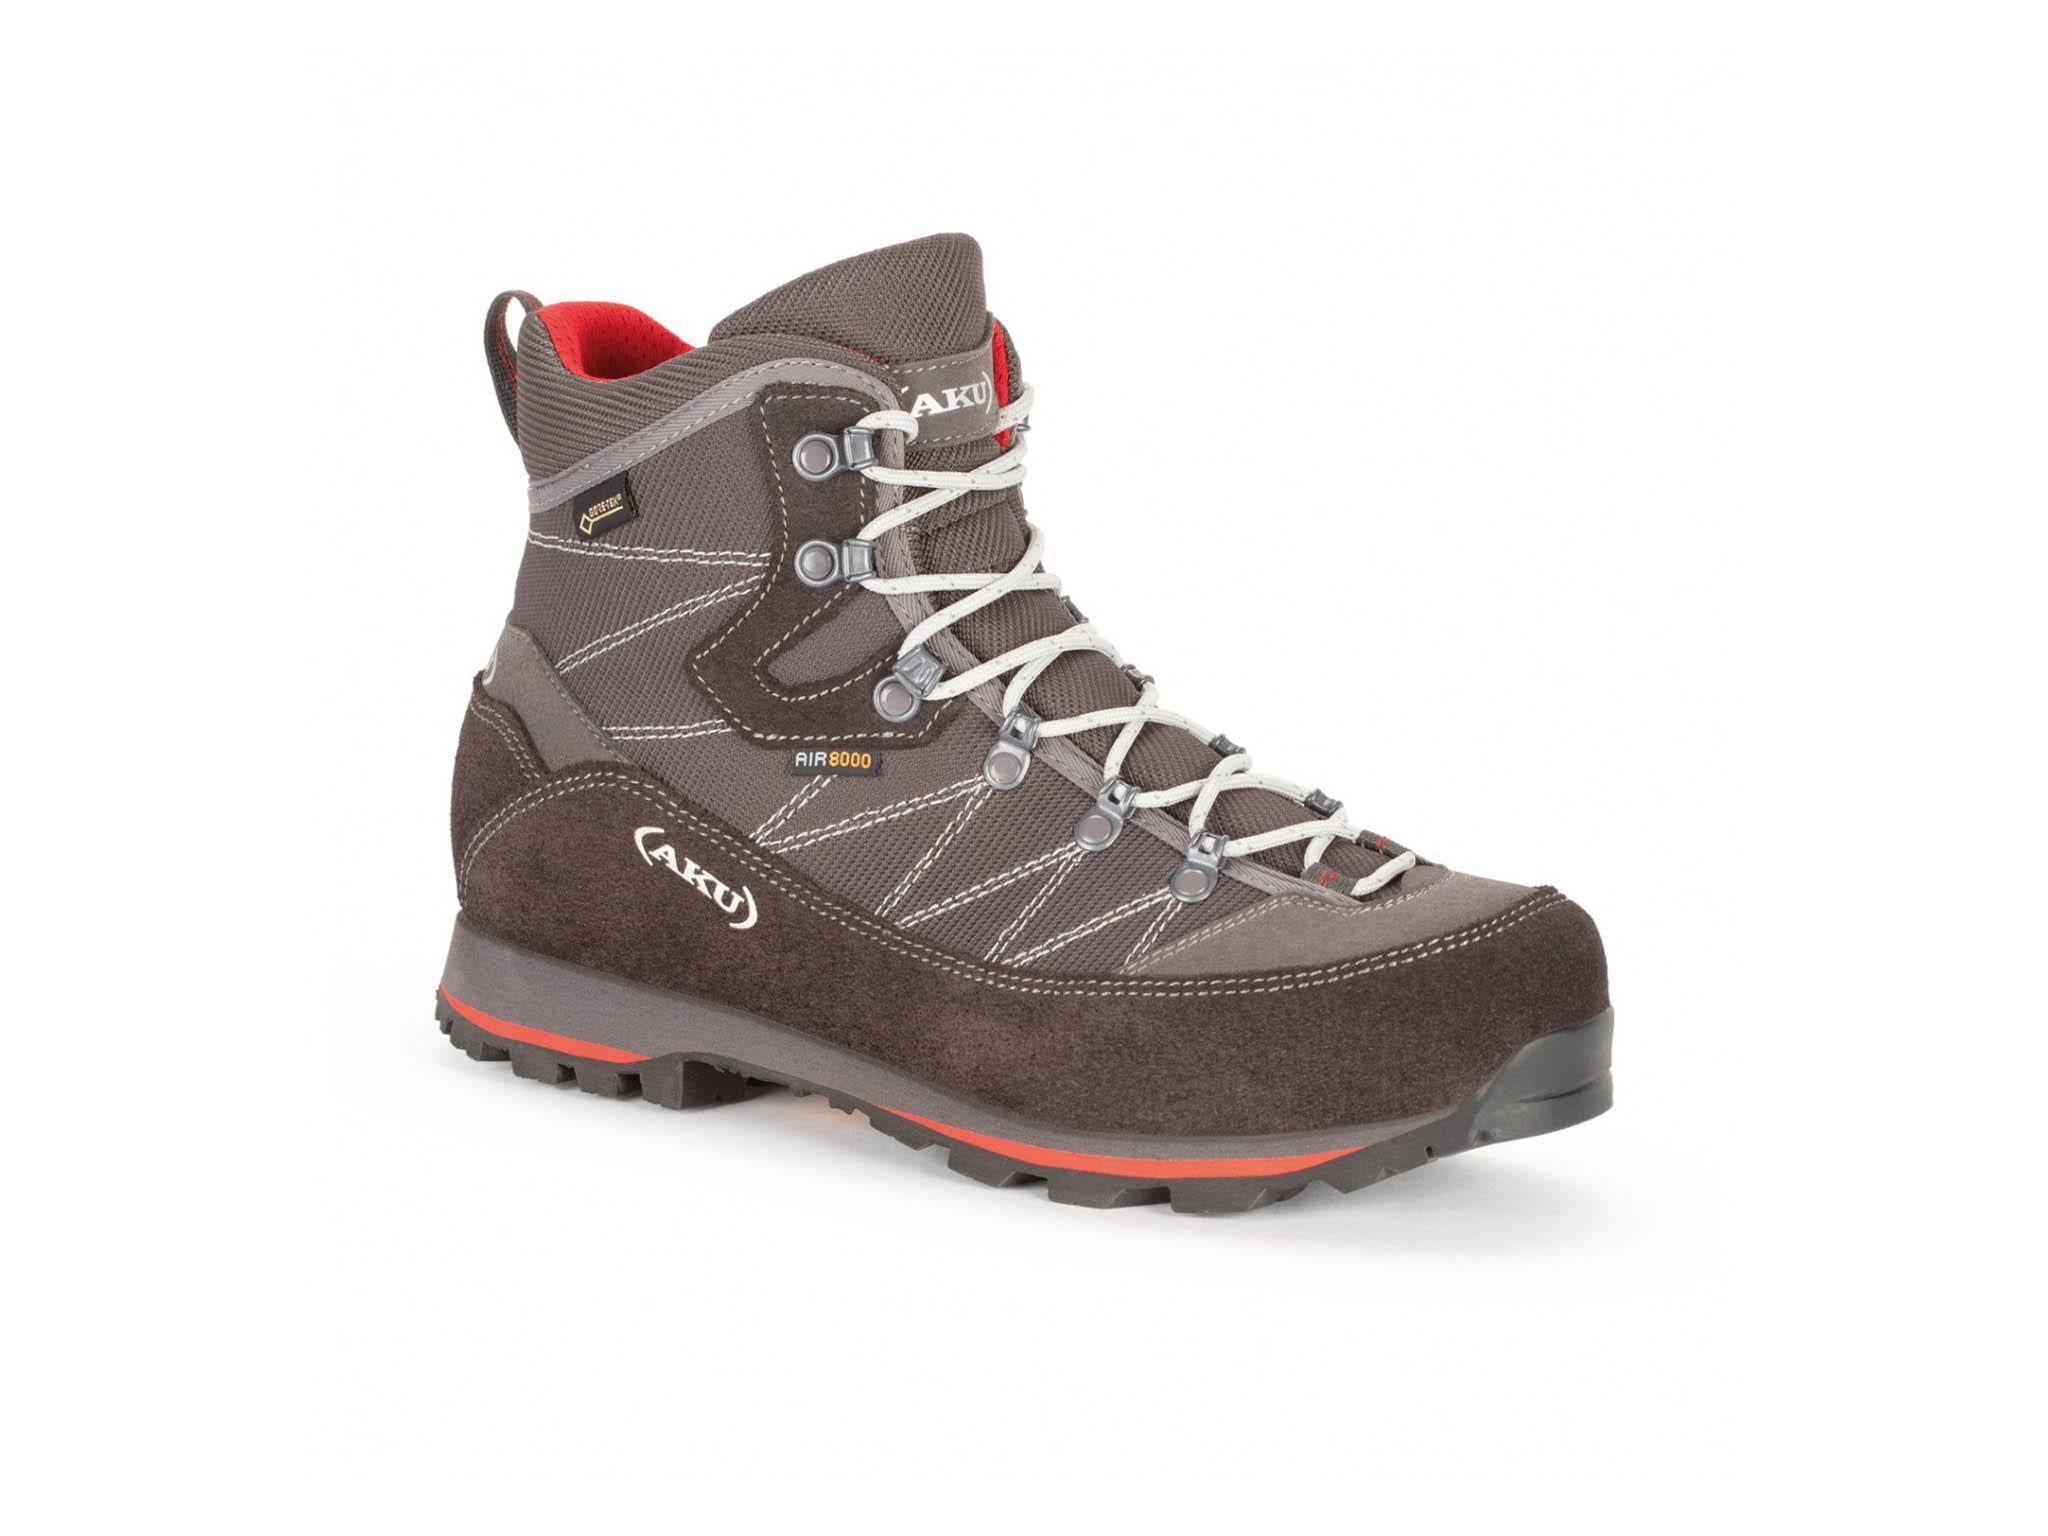 efe068ca4 Best men's hiking boots and shoes